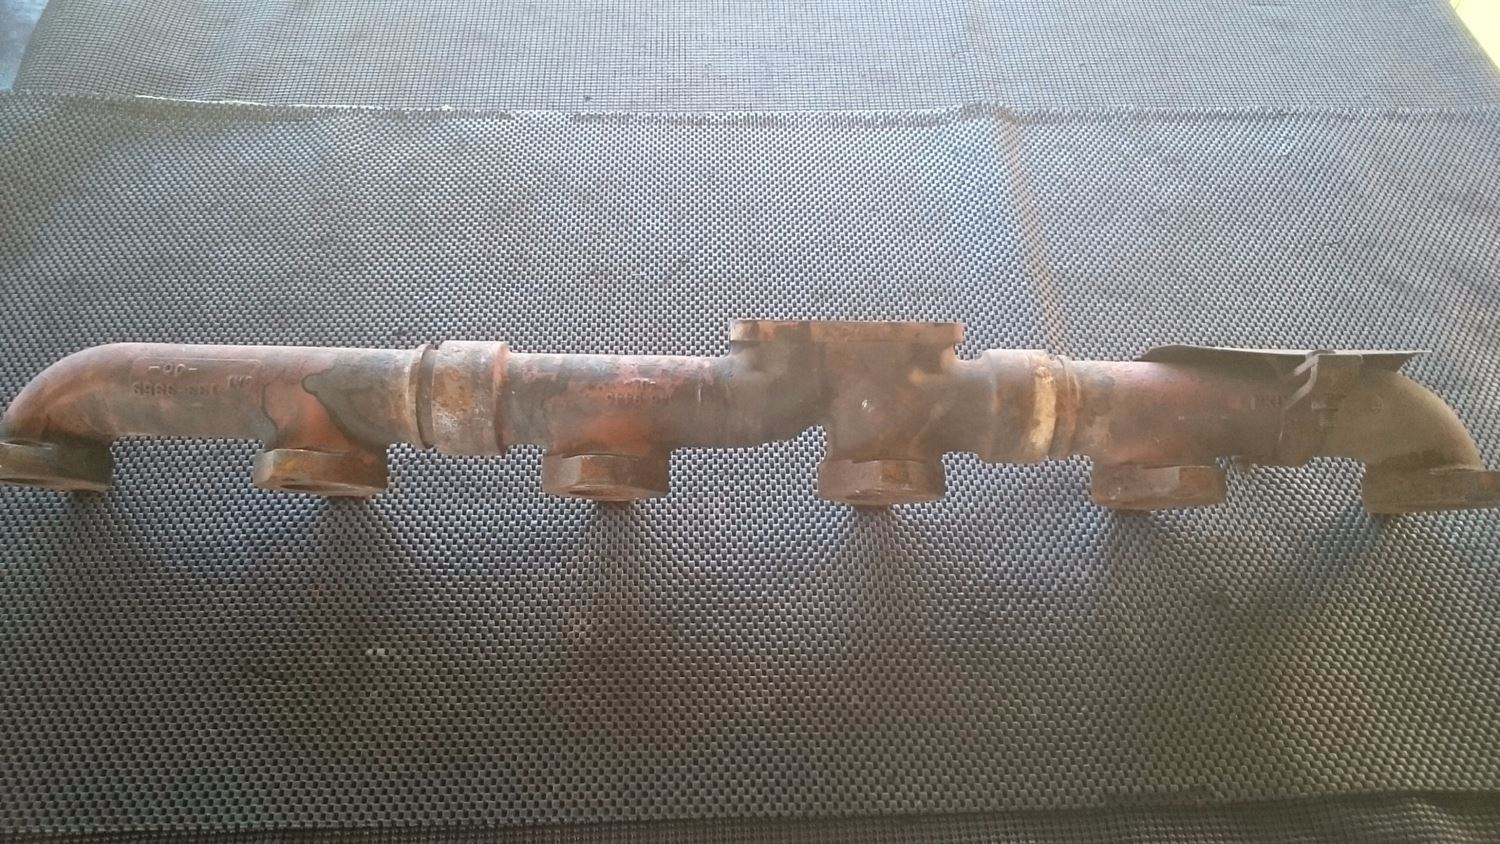 Exhaust Manifolds New And Used Parts American Truck Chrome 3406e Caterpillar Engine Wiring For 146l Exhauast Manifold